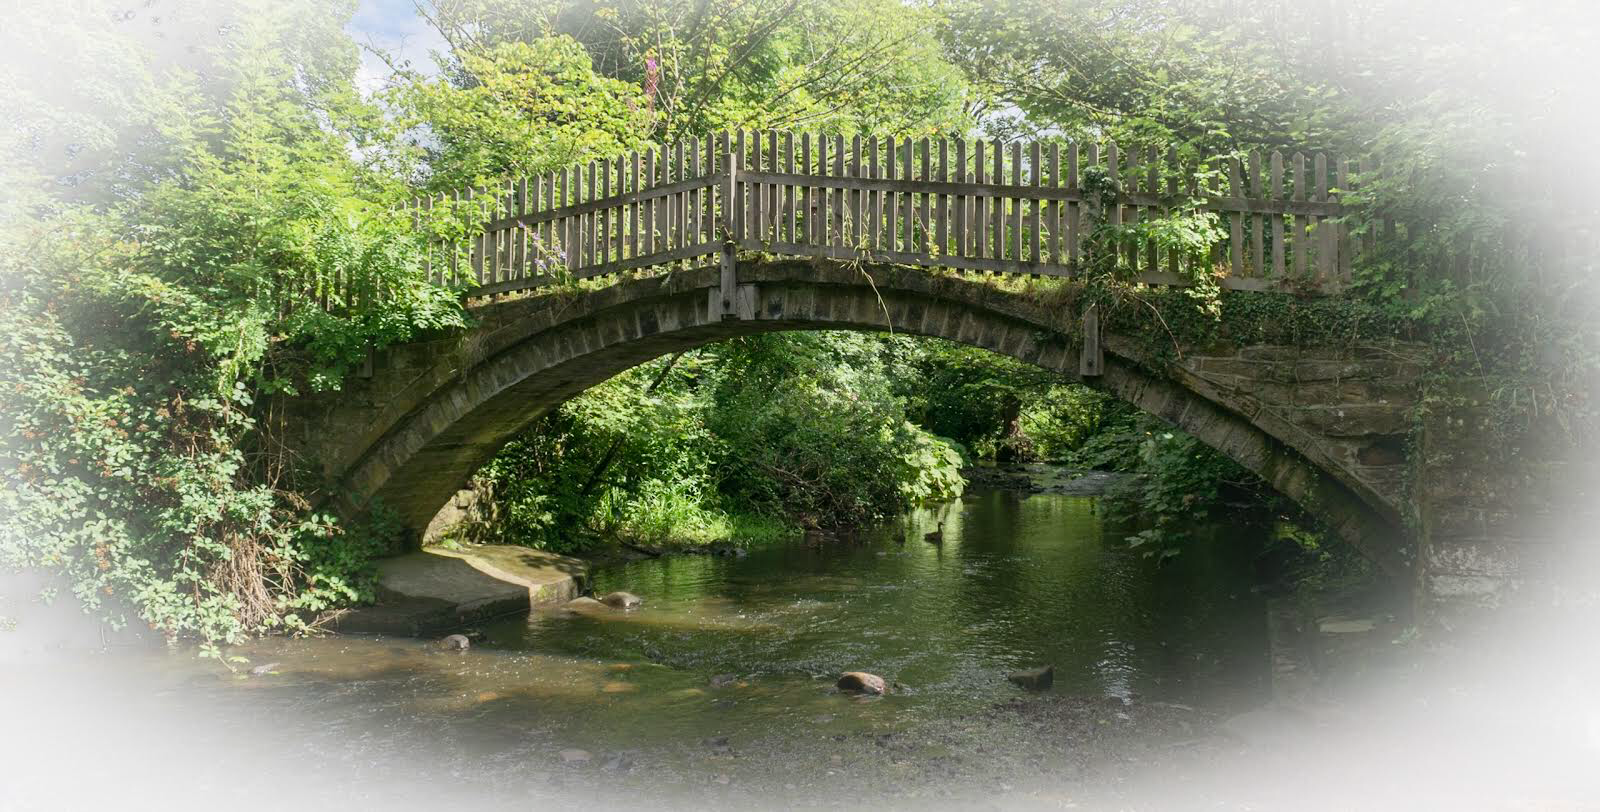 Beckfoot bridge. Near Bingley. West Yorkshire. England